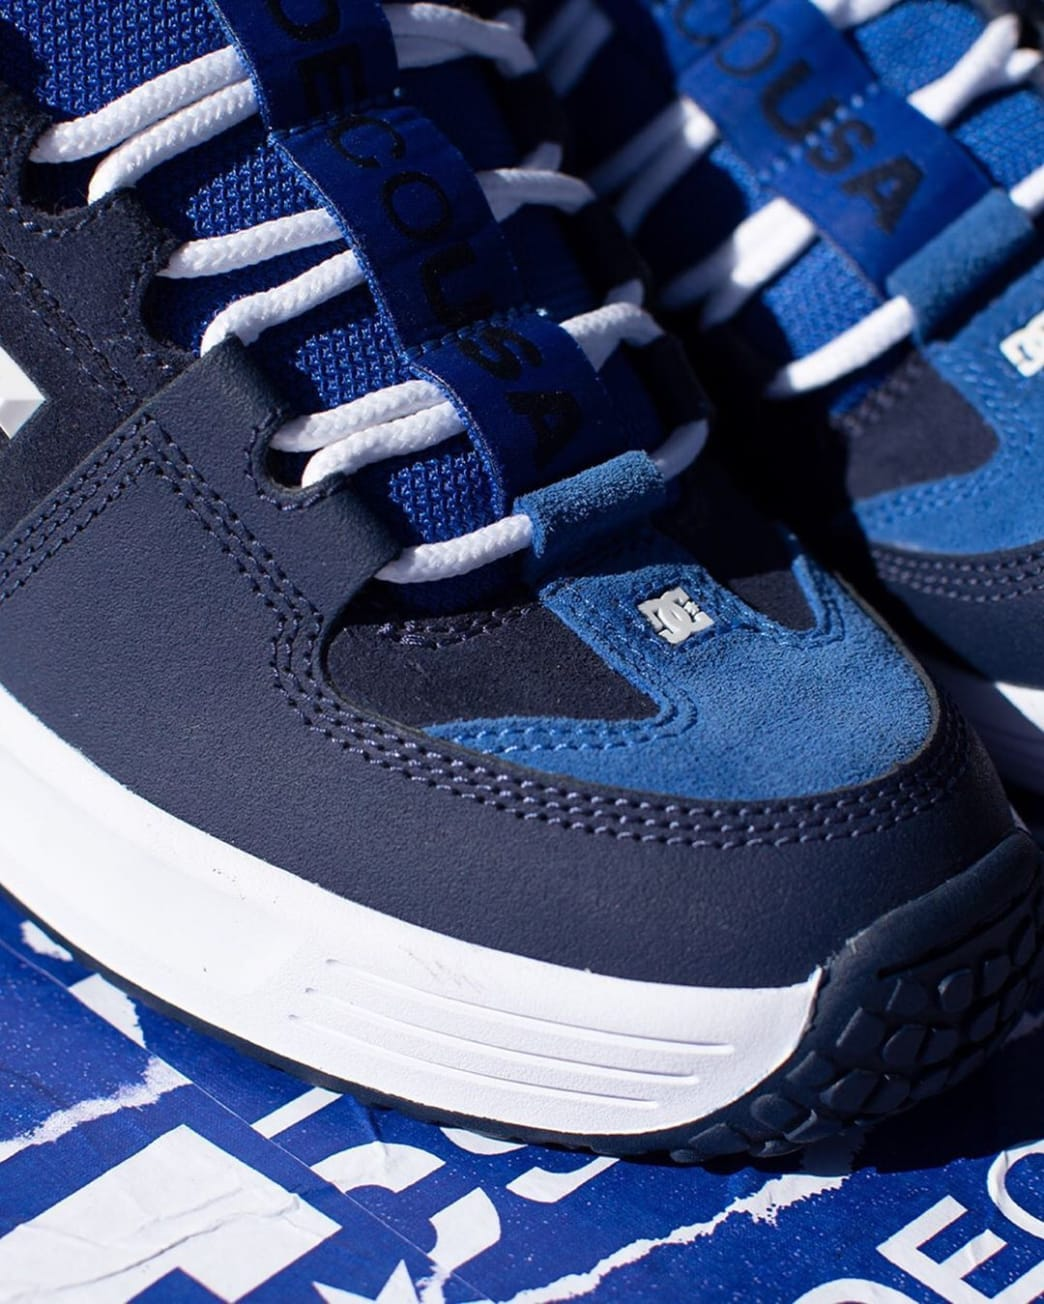 DC Shoes Lynx OG Skateboarding Shoe - Navy - Limited Edition | Shoes by DC Shoes 8